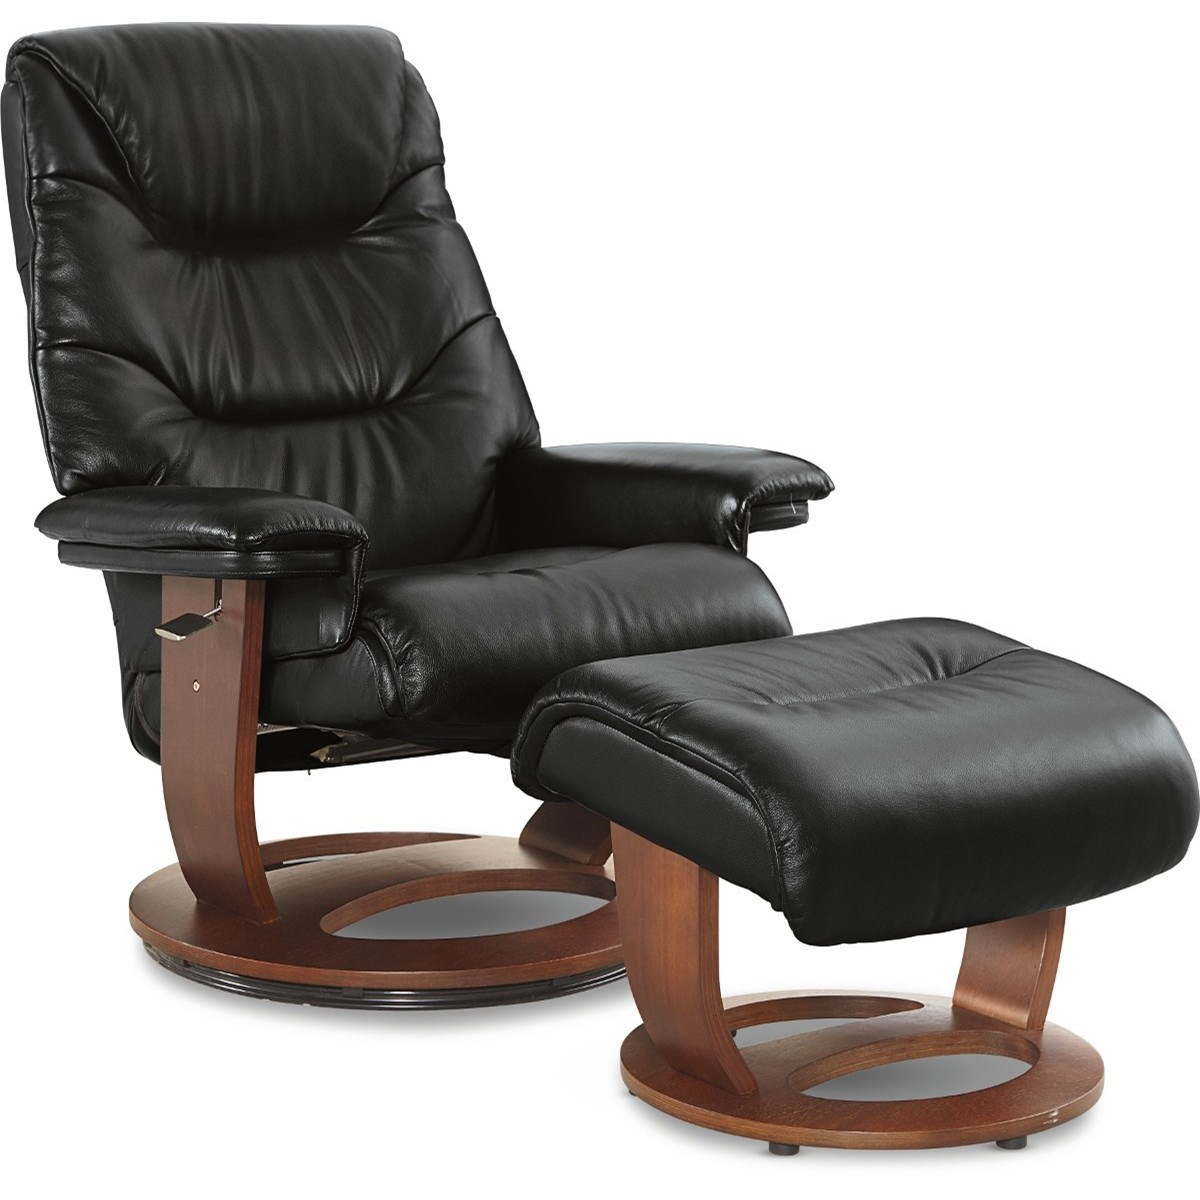 Contemporary European-Inspired Leather Reclining Chair and Ottoman with Walnut Finish